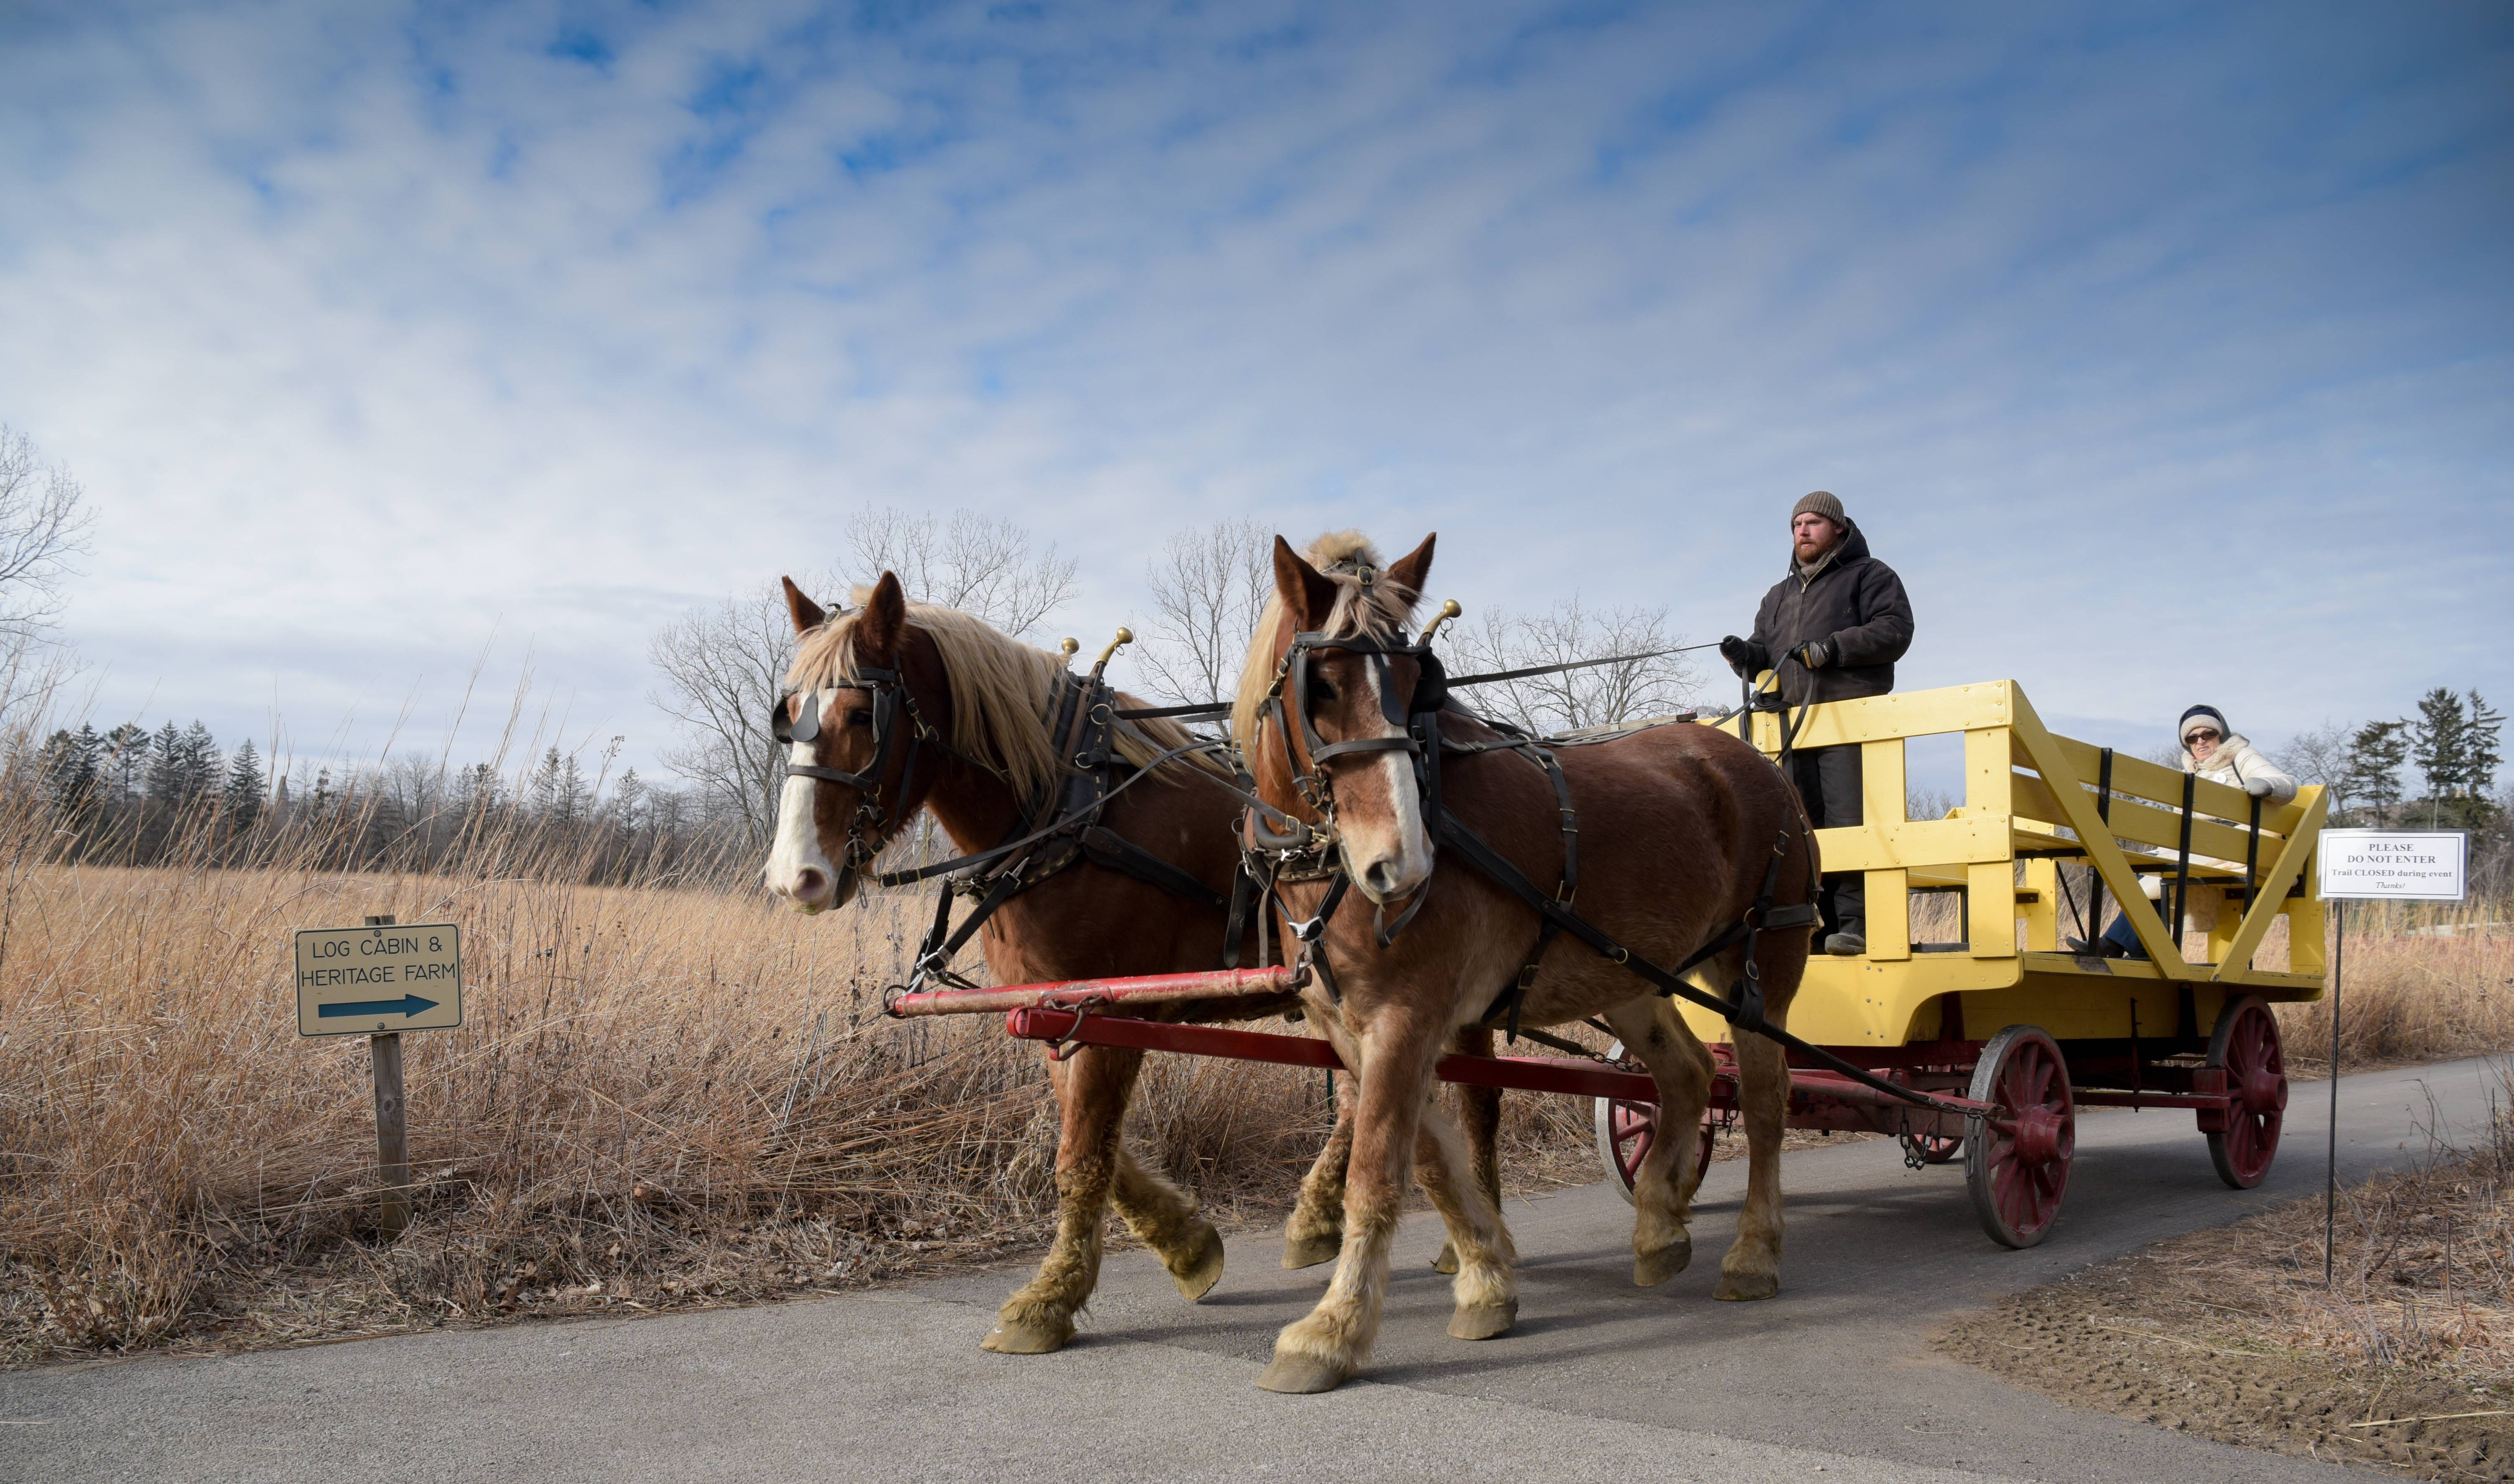 Horse-drawn wagon rides will be available during the annual Spring Valley Winter Fest in Schaumburg, Jan. 19-20.